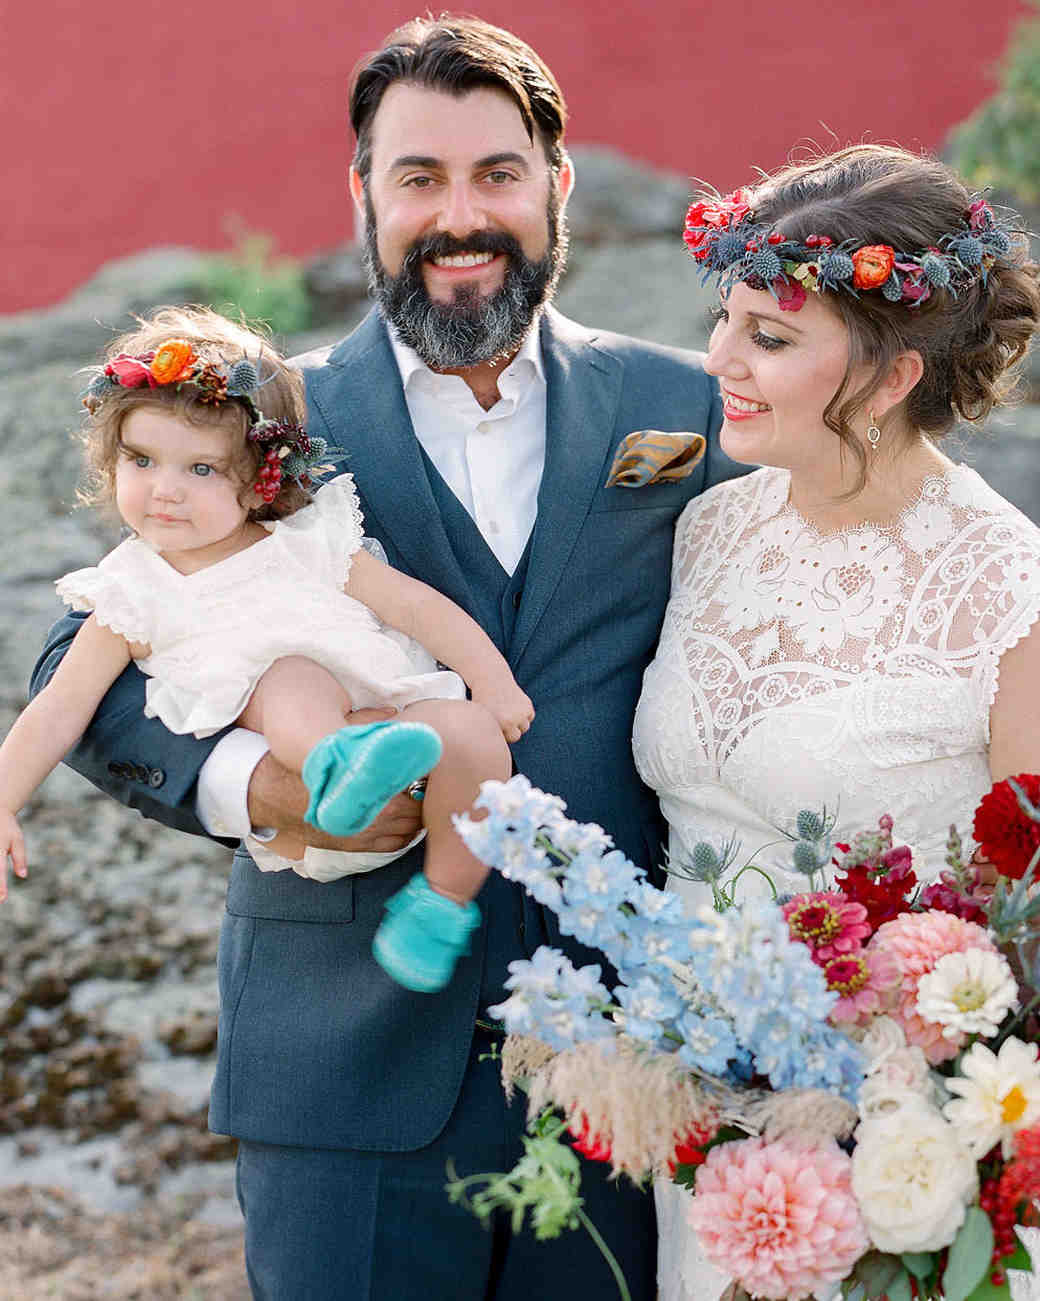 Colorful Flower Crowns on the Bride and Daughter